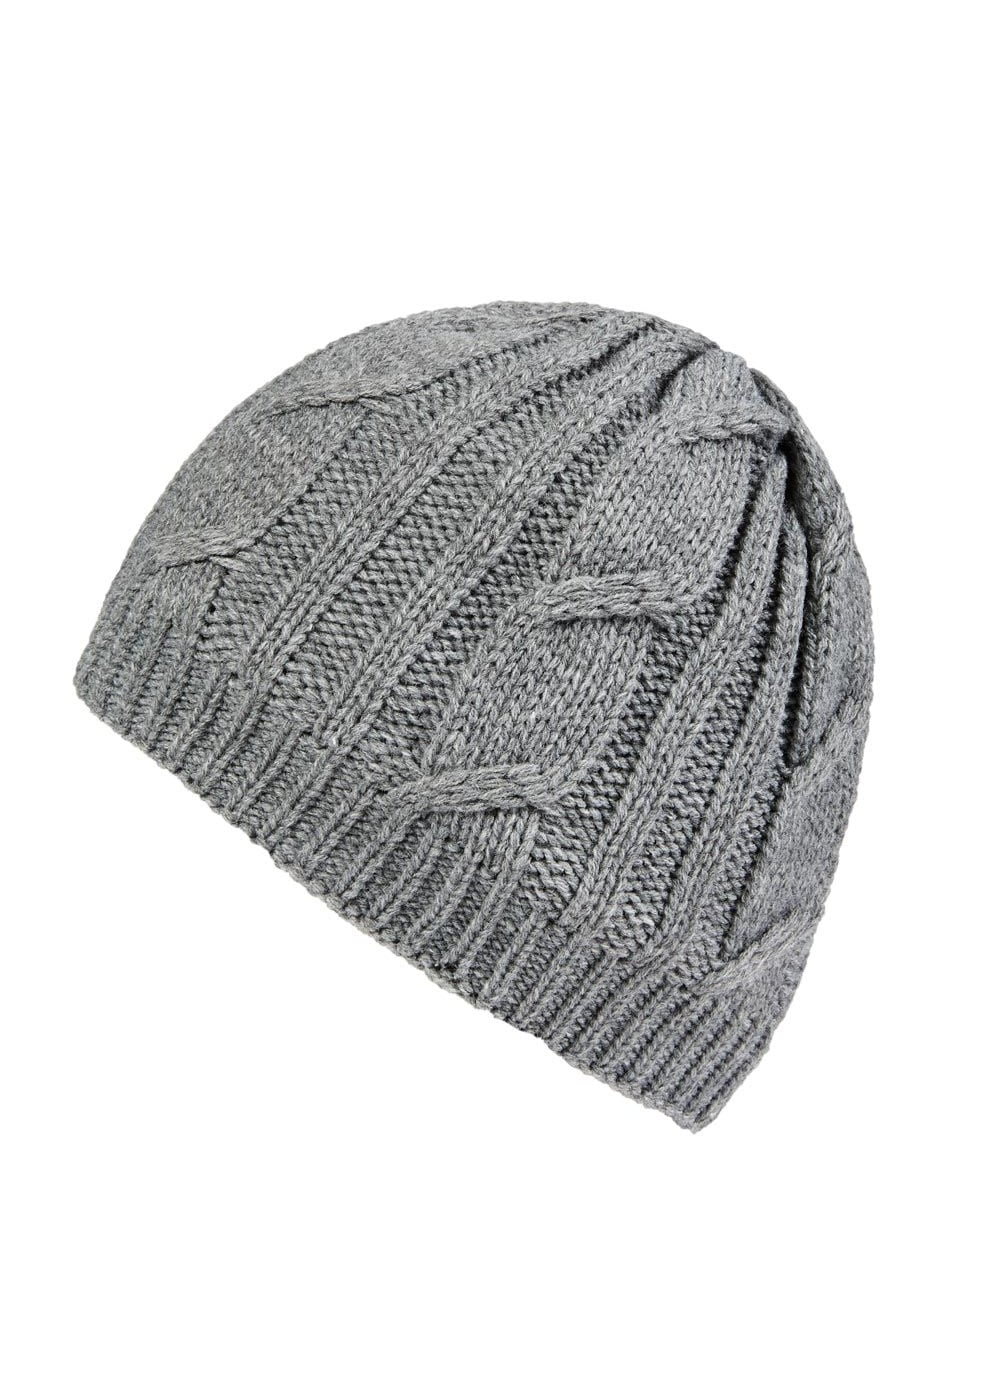 SealSkinz Waterproof Cable Knit Hat  Large Image